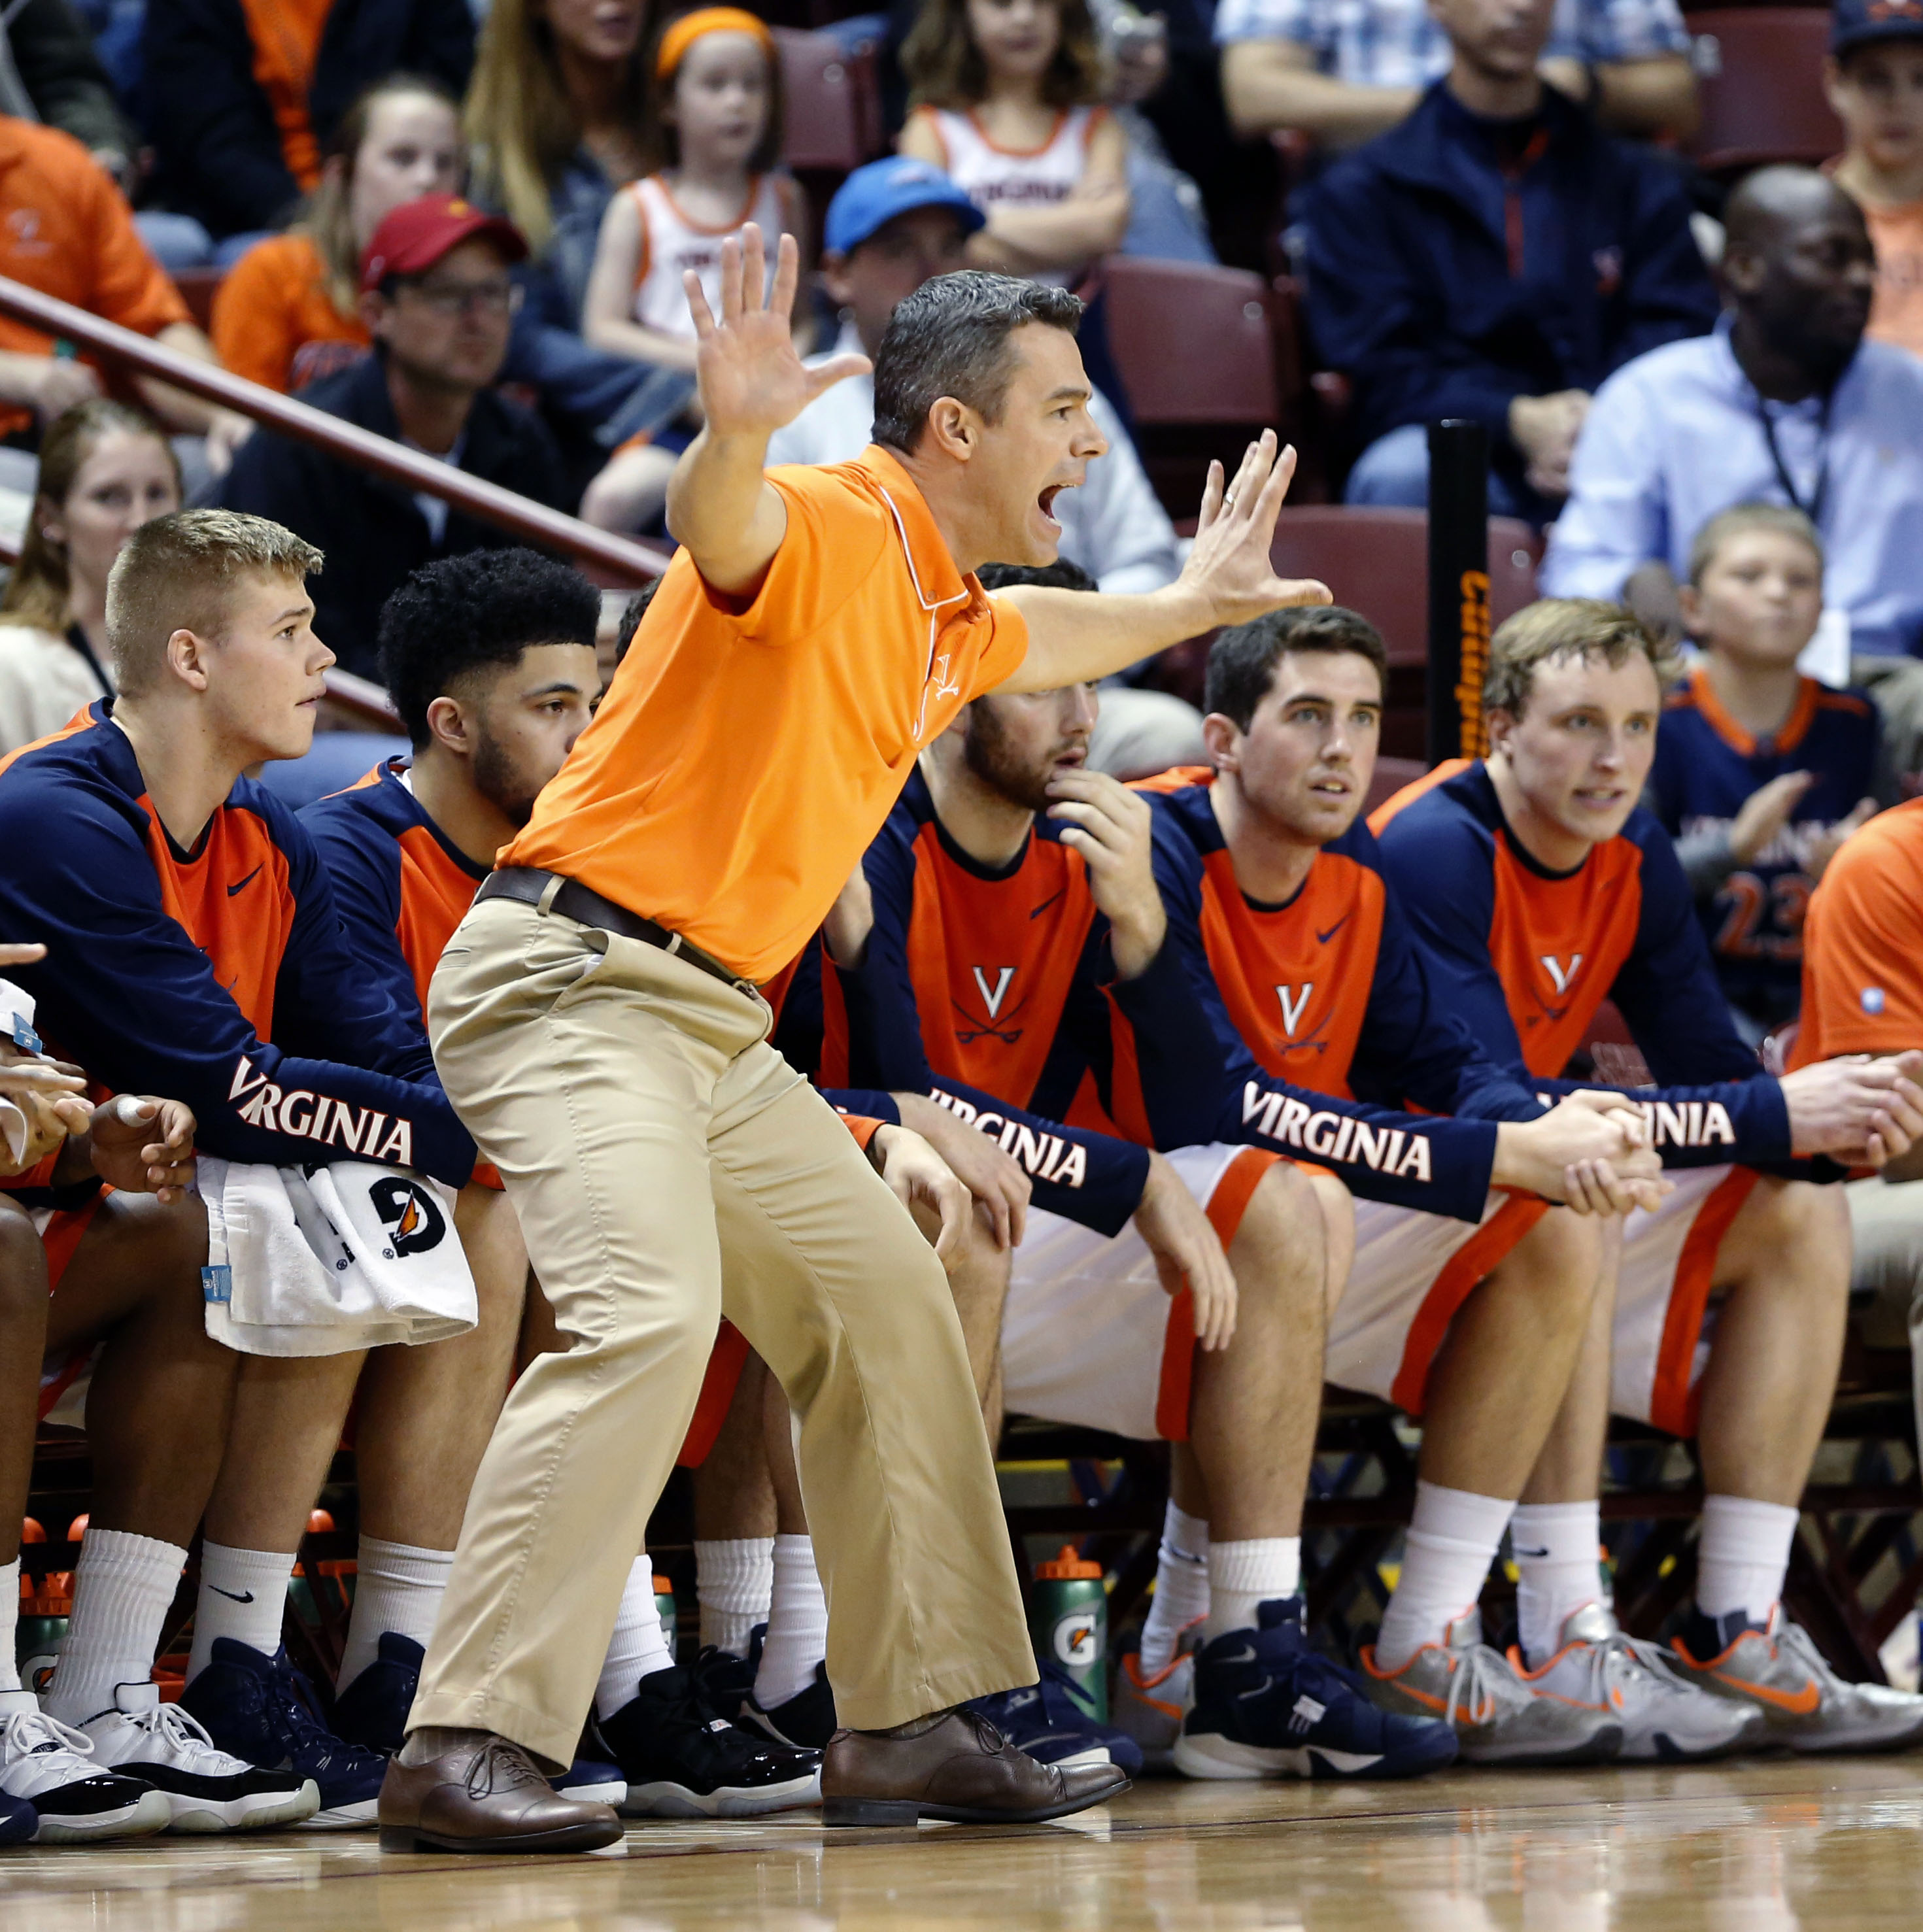 Virginia's head coach Tony Bennett yells out directions during their game against Long Beach State during the first half in an NCAA college basketball game at the Charleston Classic at TD Arena, Friday Nov. 20, 2015, in Charleston, S.C.  (AP Photo/Mic Smi